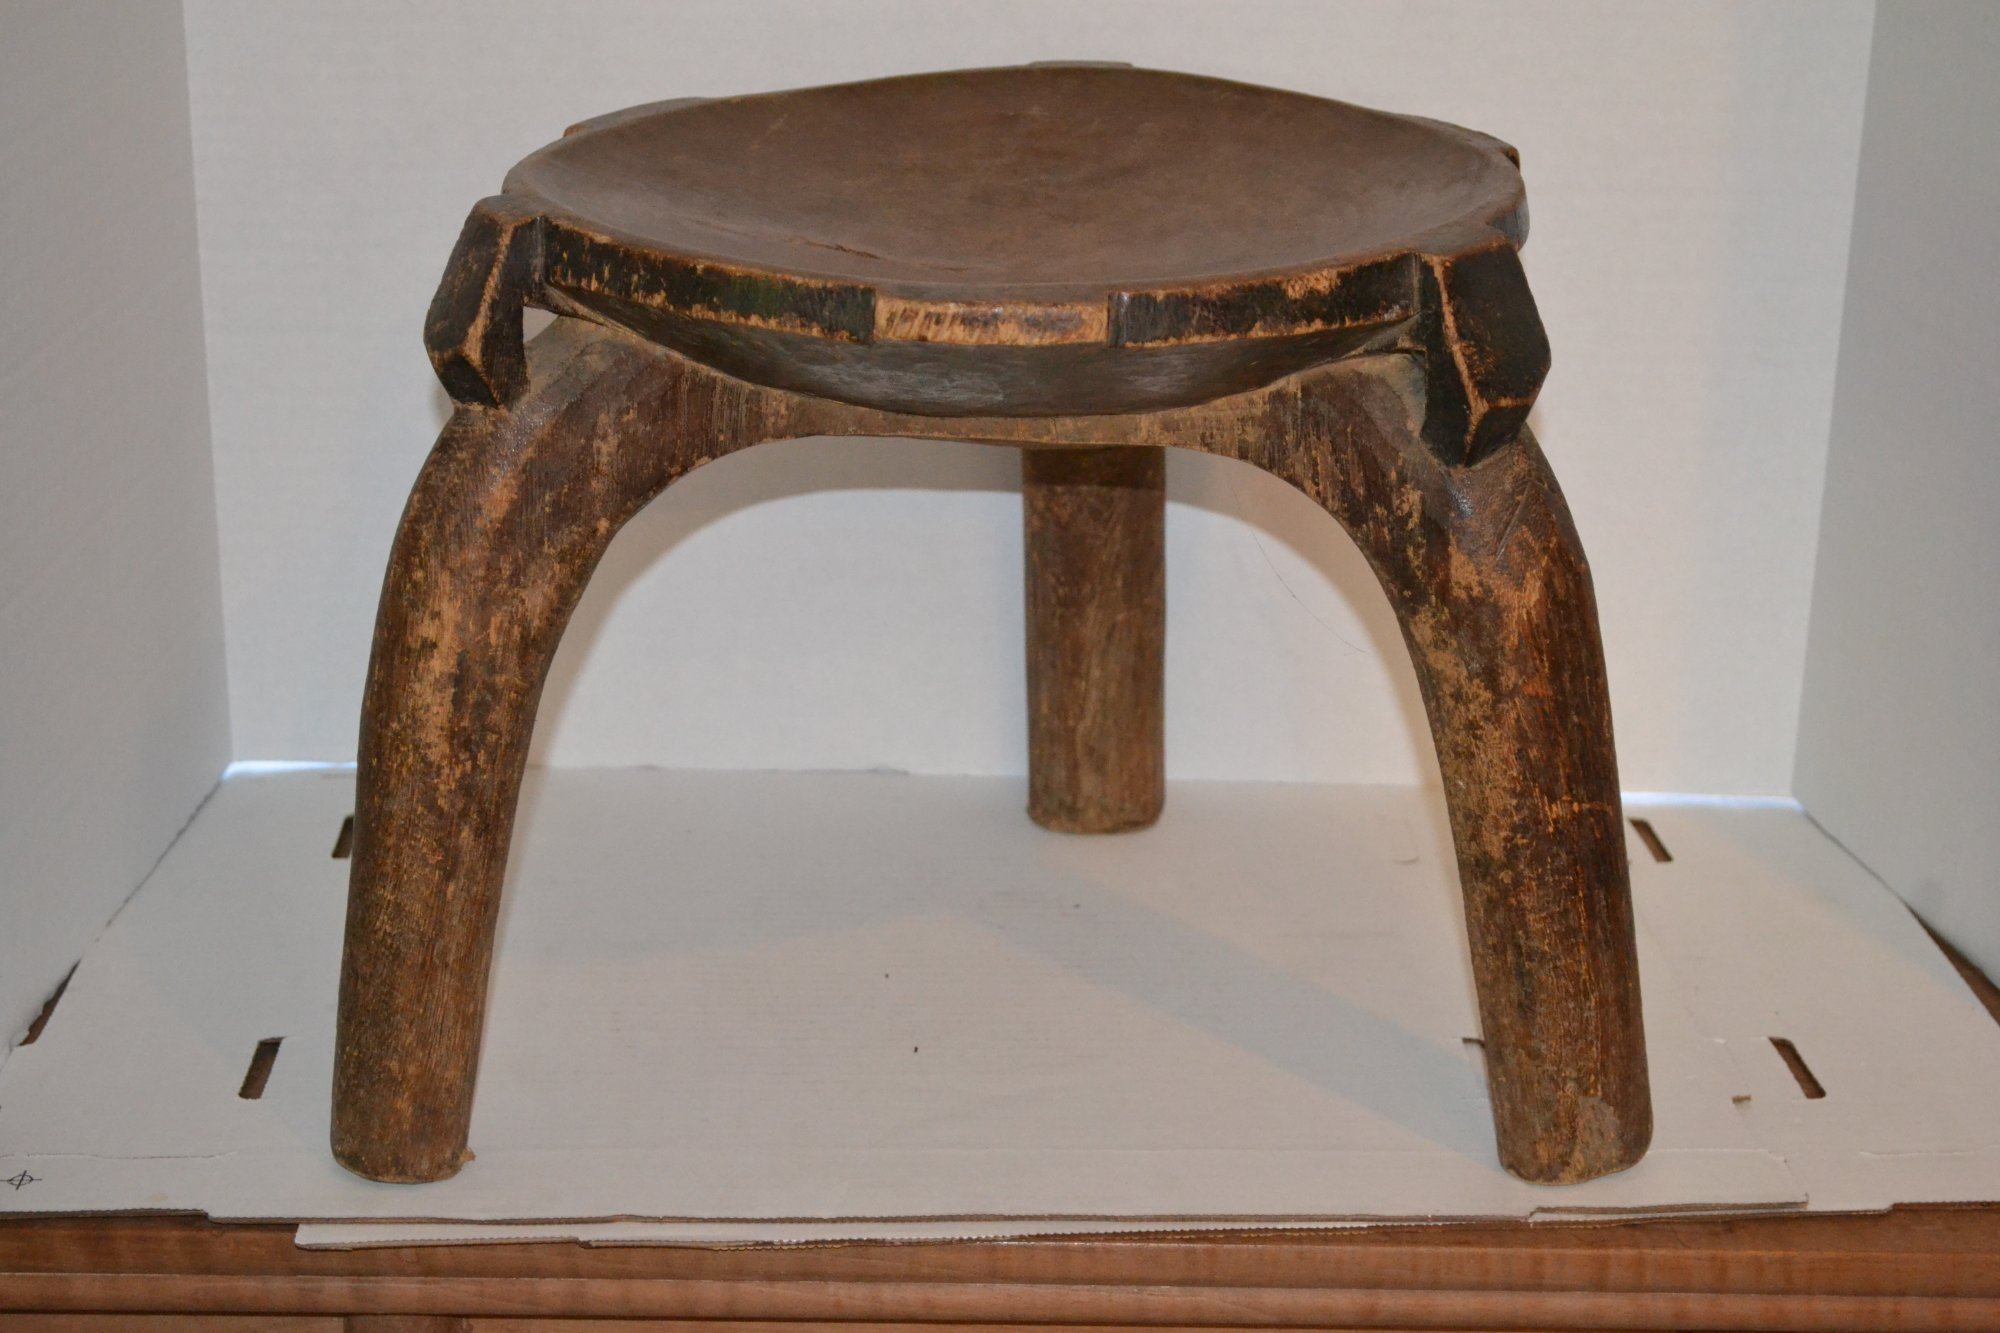 19th Century African Wooden Stool Congo Tribe H. 12 X W. 14